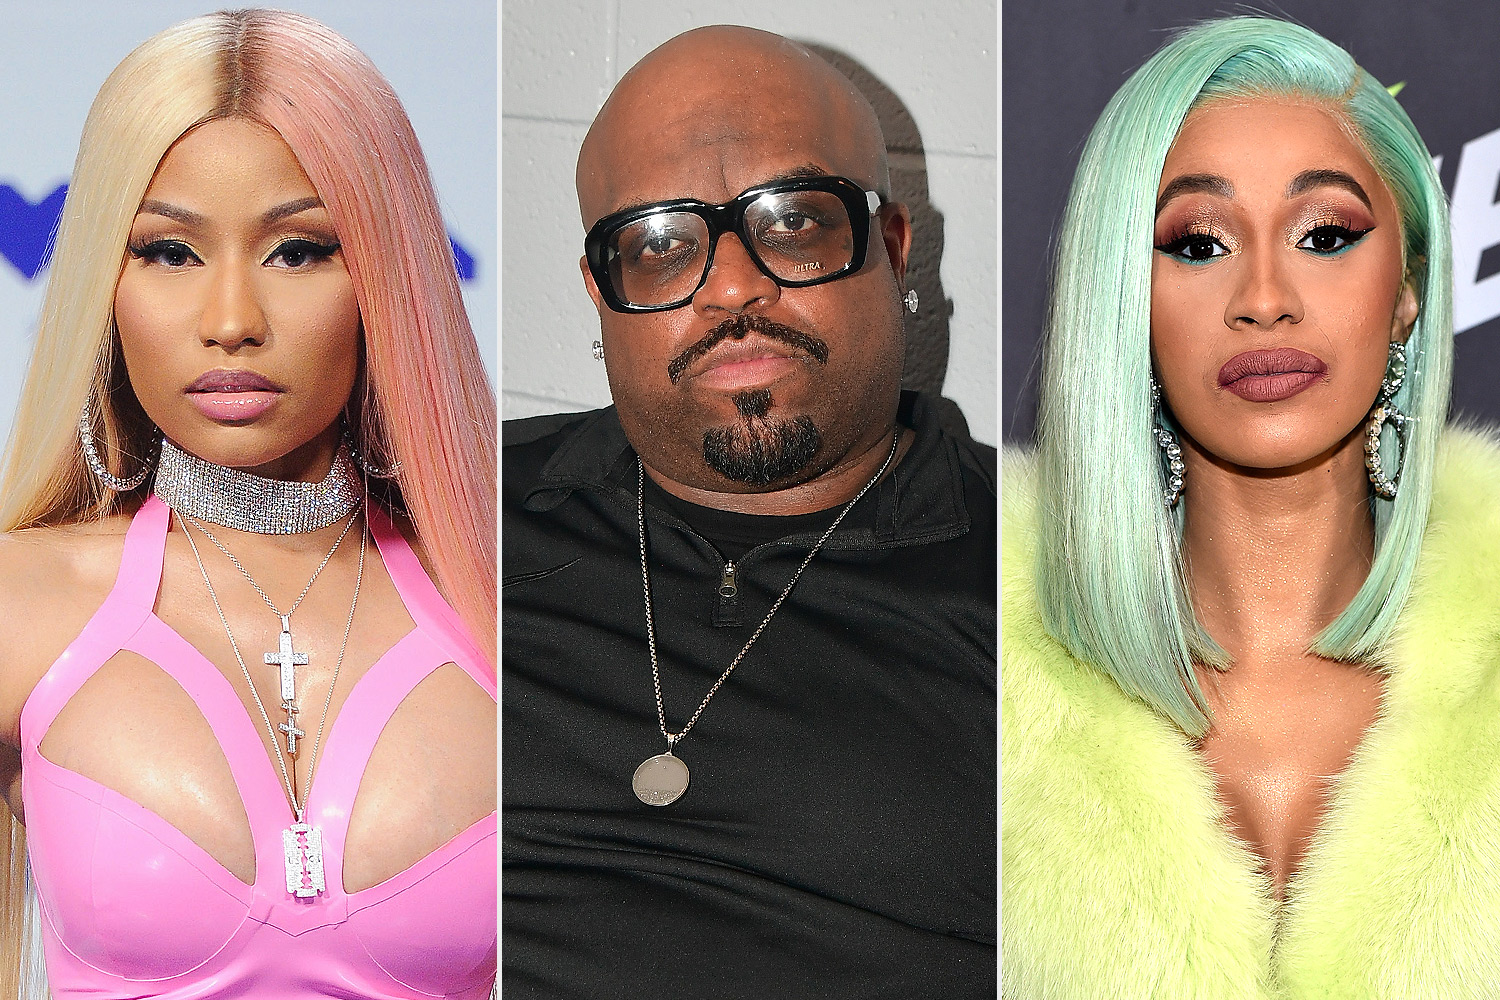 CeeLo Green, Cardi B and Nicki Minaj